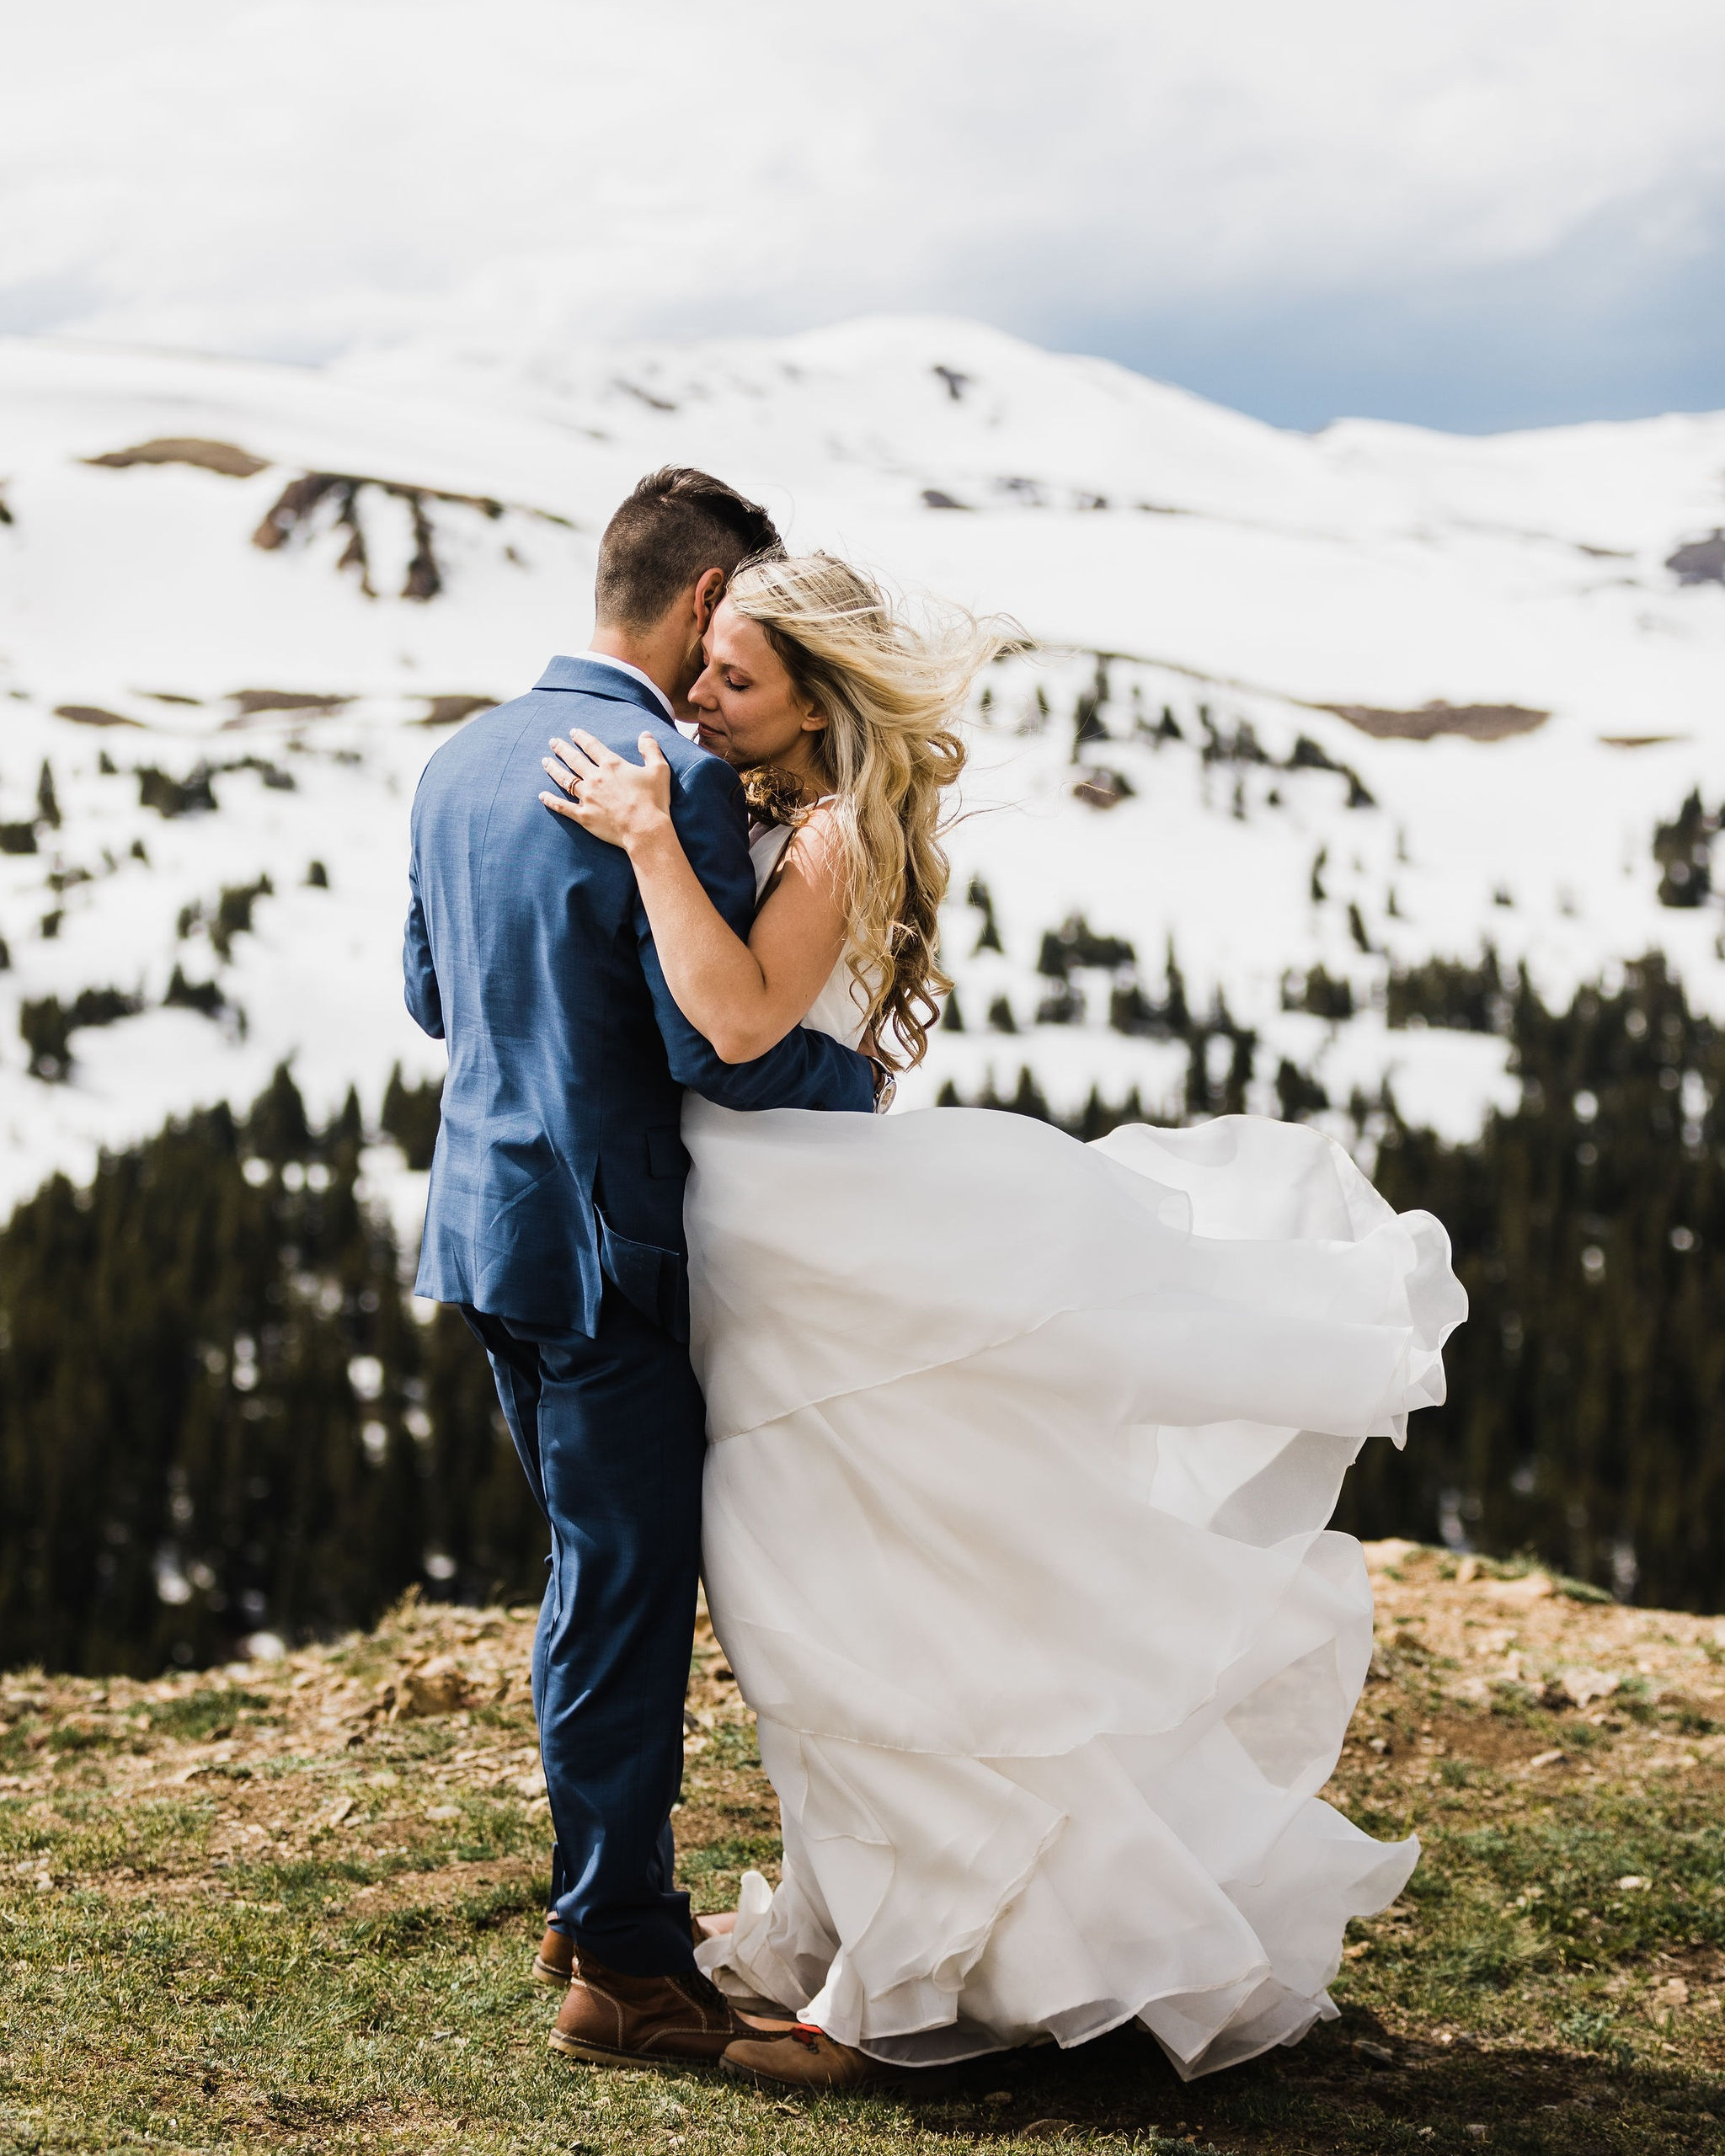 Colorado+Elopement+Photographer+Vow+of+theWild